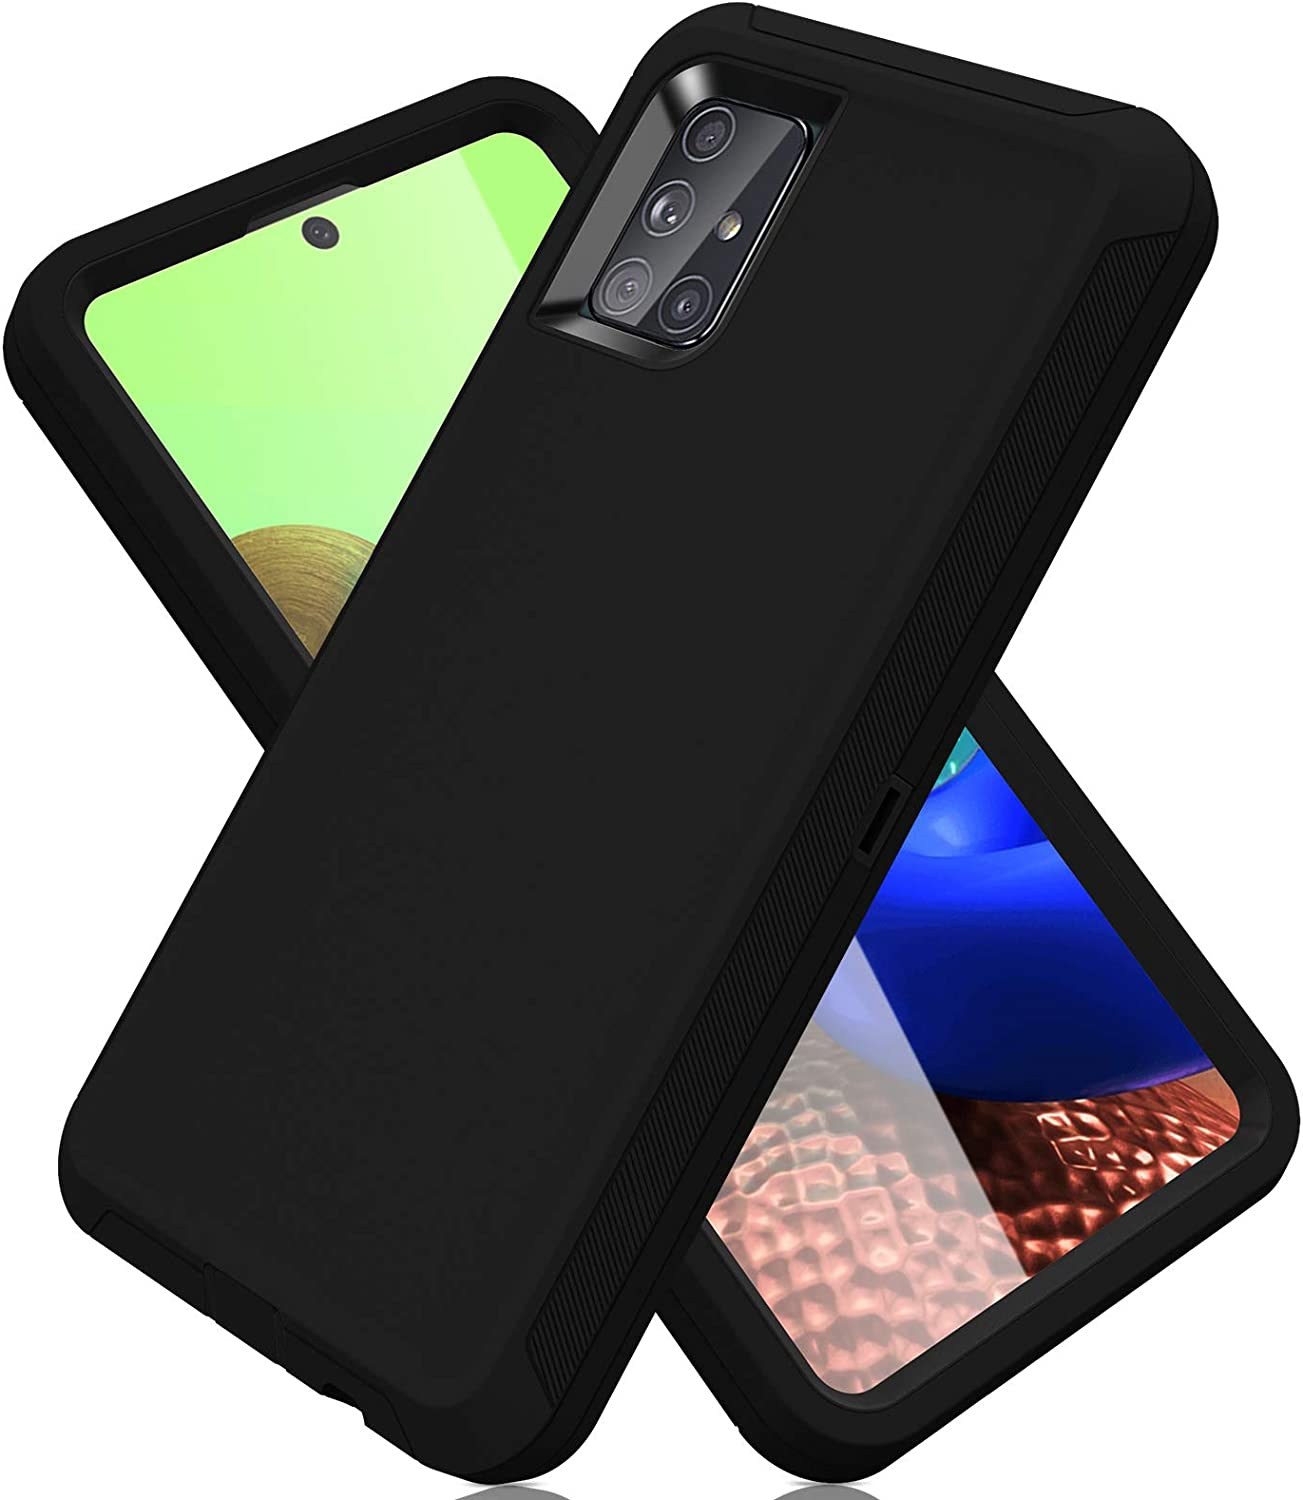 ACAGET for Samsung A71 5G Case, Galaxy A71 Case 5G Heavy Duty Protective Armor Shock-Absorbing Dual Layer Rubber TPU + PC Cover Non-Slip Bumper Phone Cases for Samsung Galaxy A71 5G Black